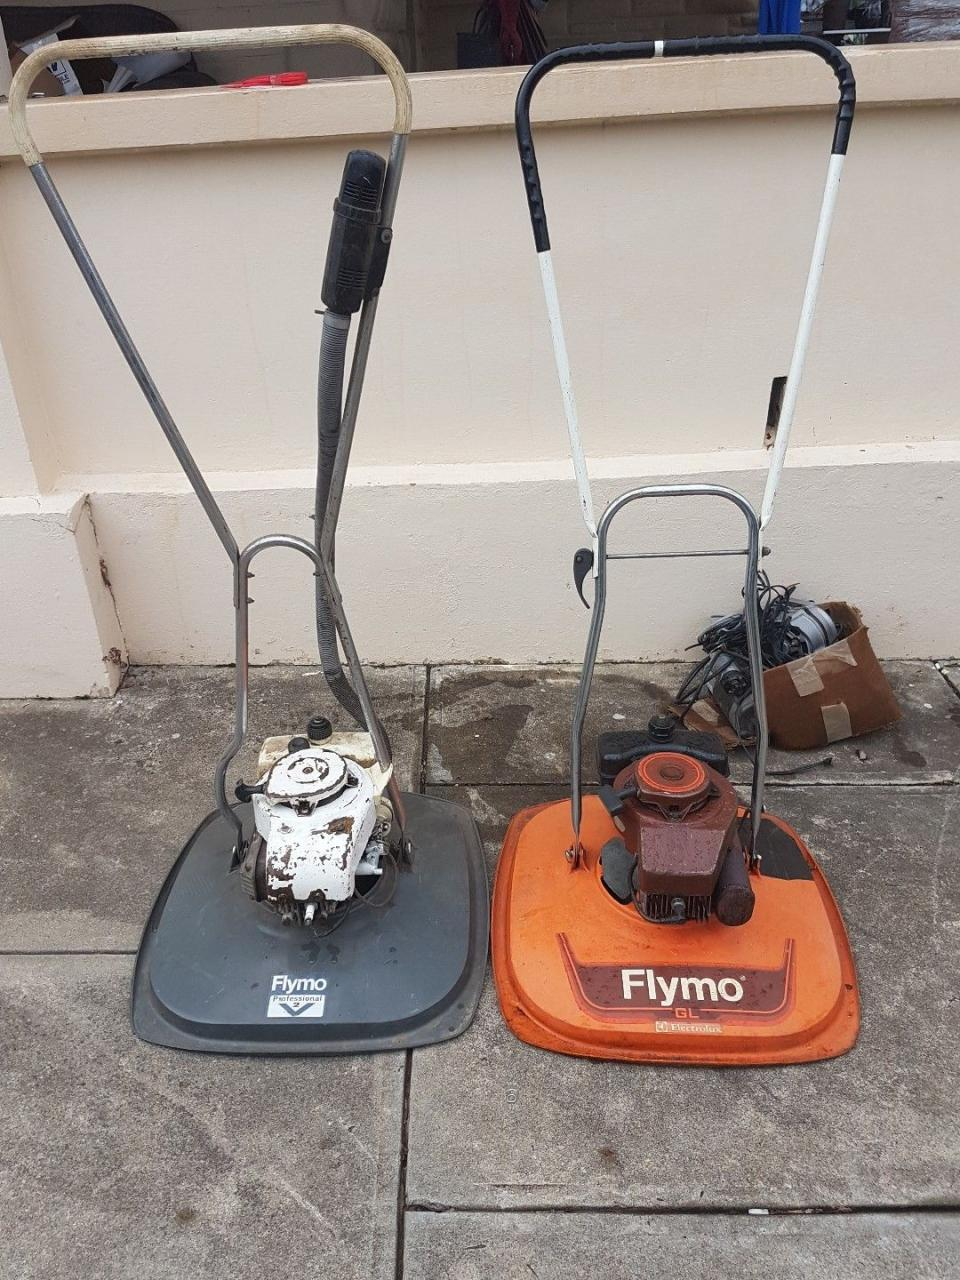 3a988a590669 Flymo Petrol Hover Mower - A first for me ! - OutdoorKing Repair Forum